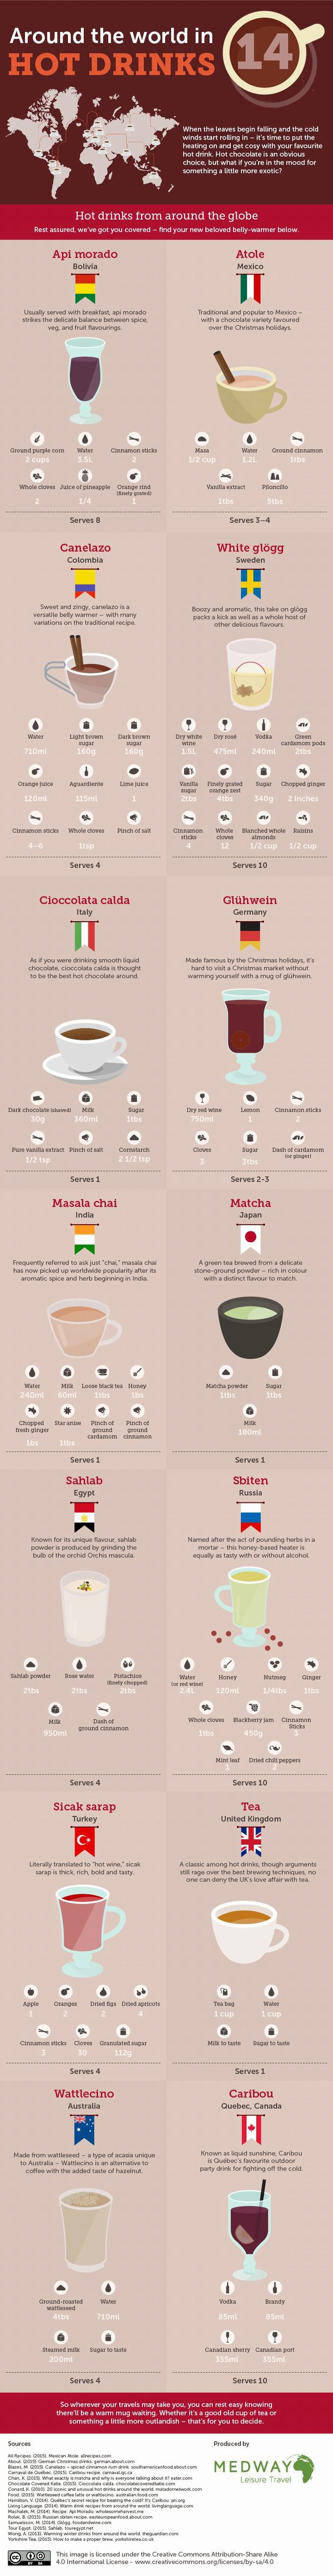 14 Traditional Hot Drinks from Around the World You Have to Try